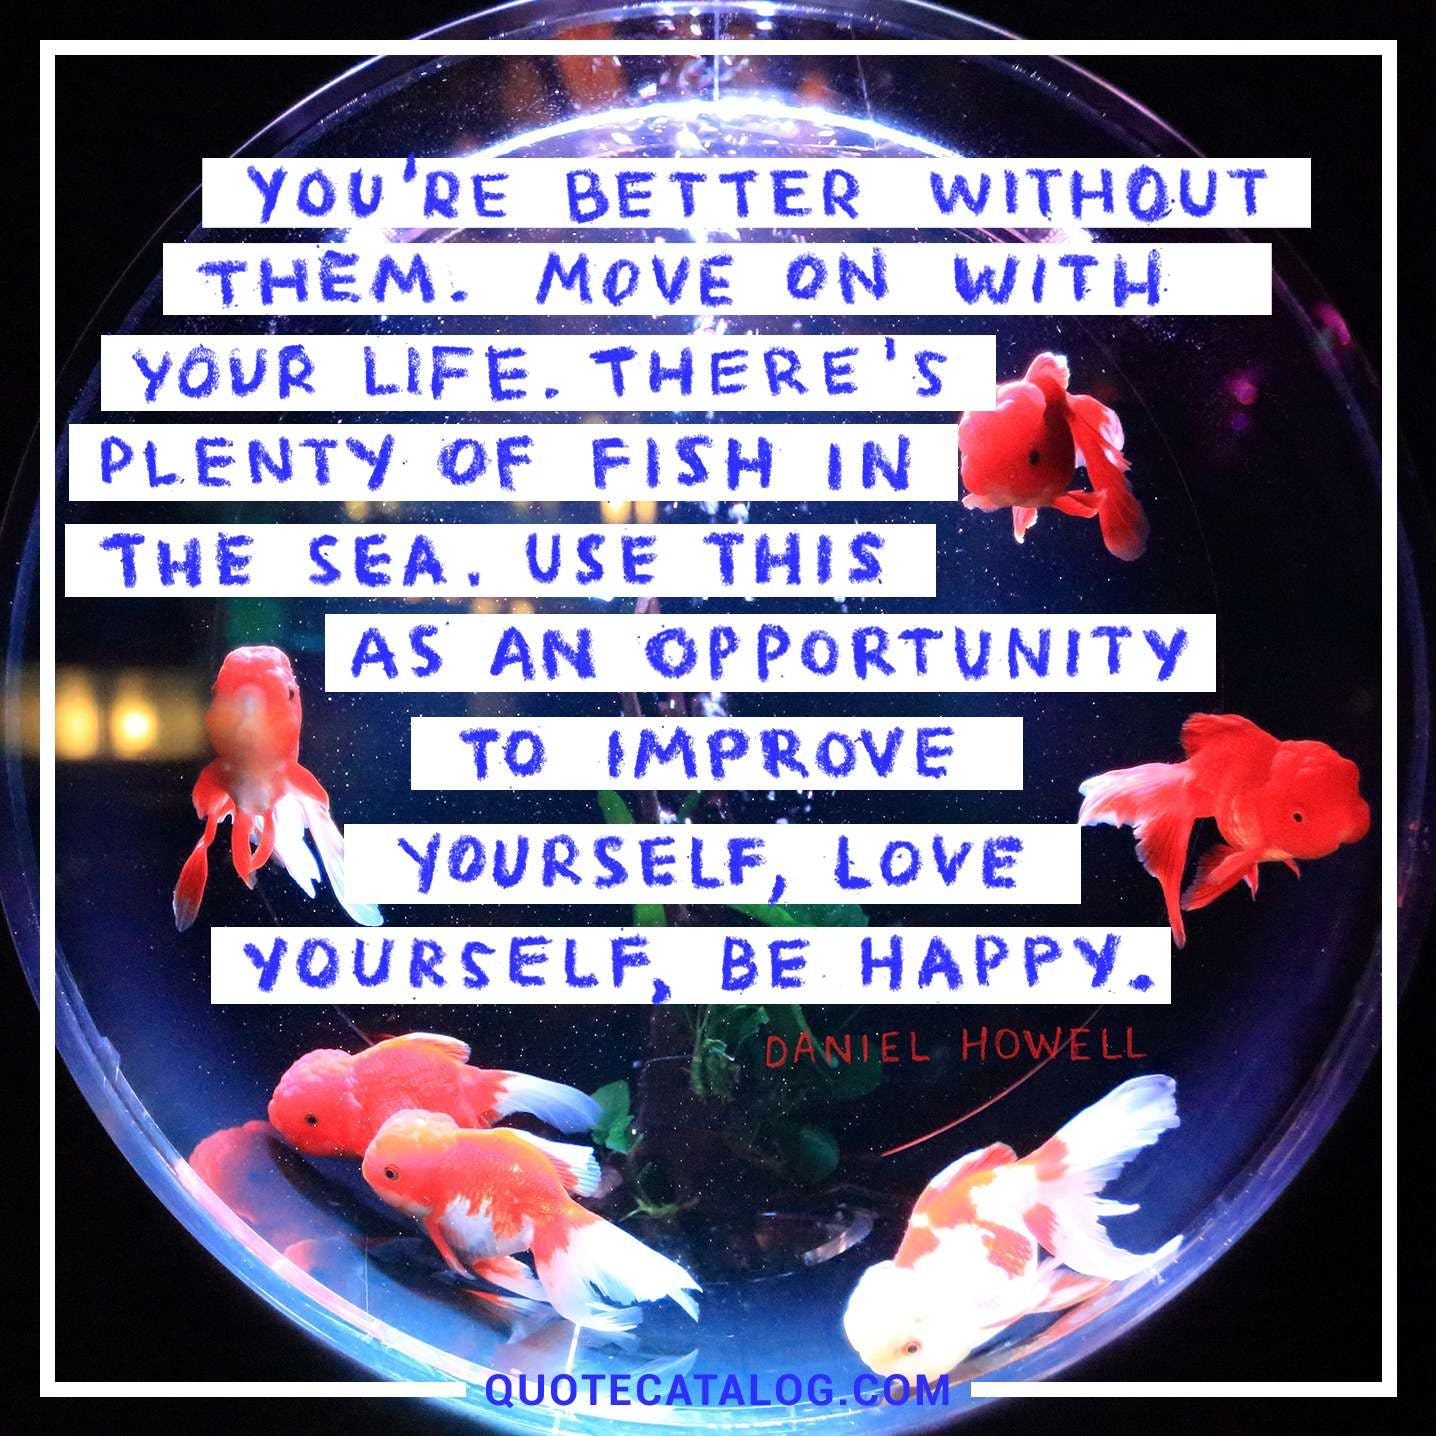 You're better without them. Move on with your life. There's plenty of fish in the sea. Use this as an opportunity to improve yourself, love yourself, be happy.